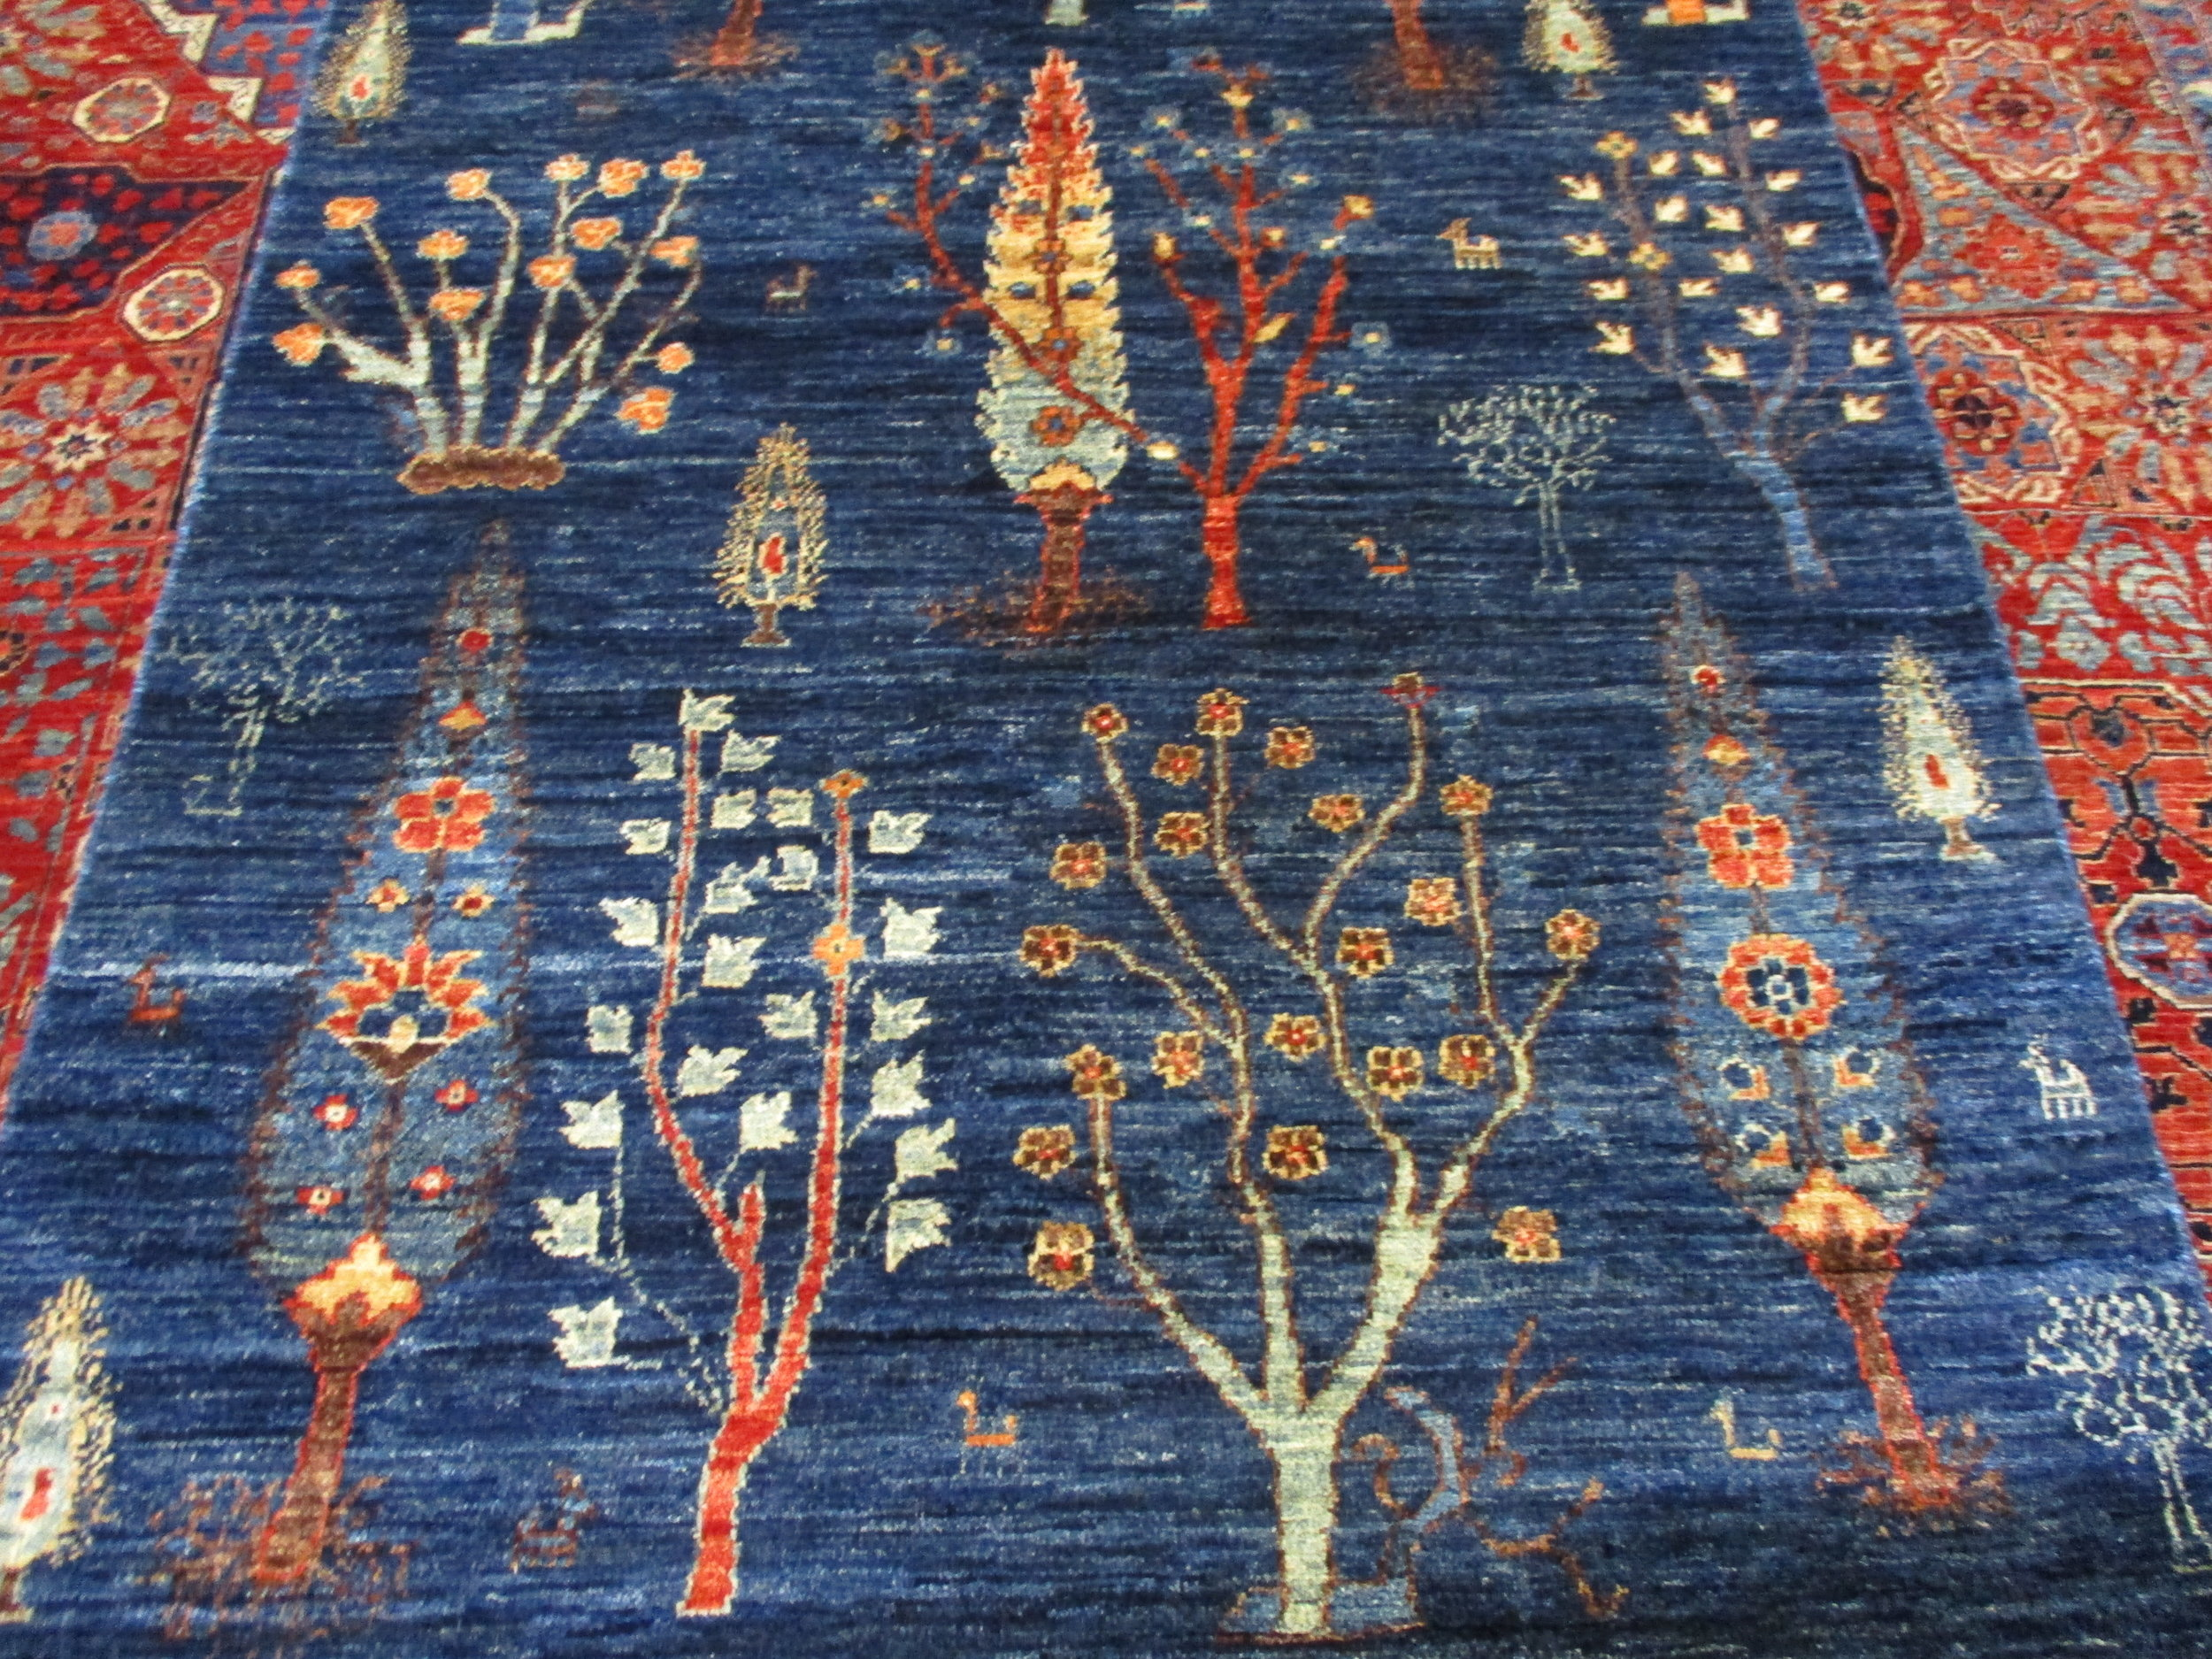 #39b) 17 ft. Afghan runner, close-up. Exquisite drawing, beautiful colors!